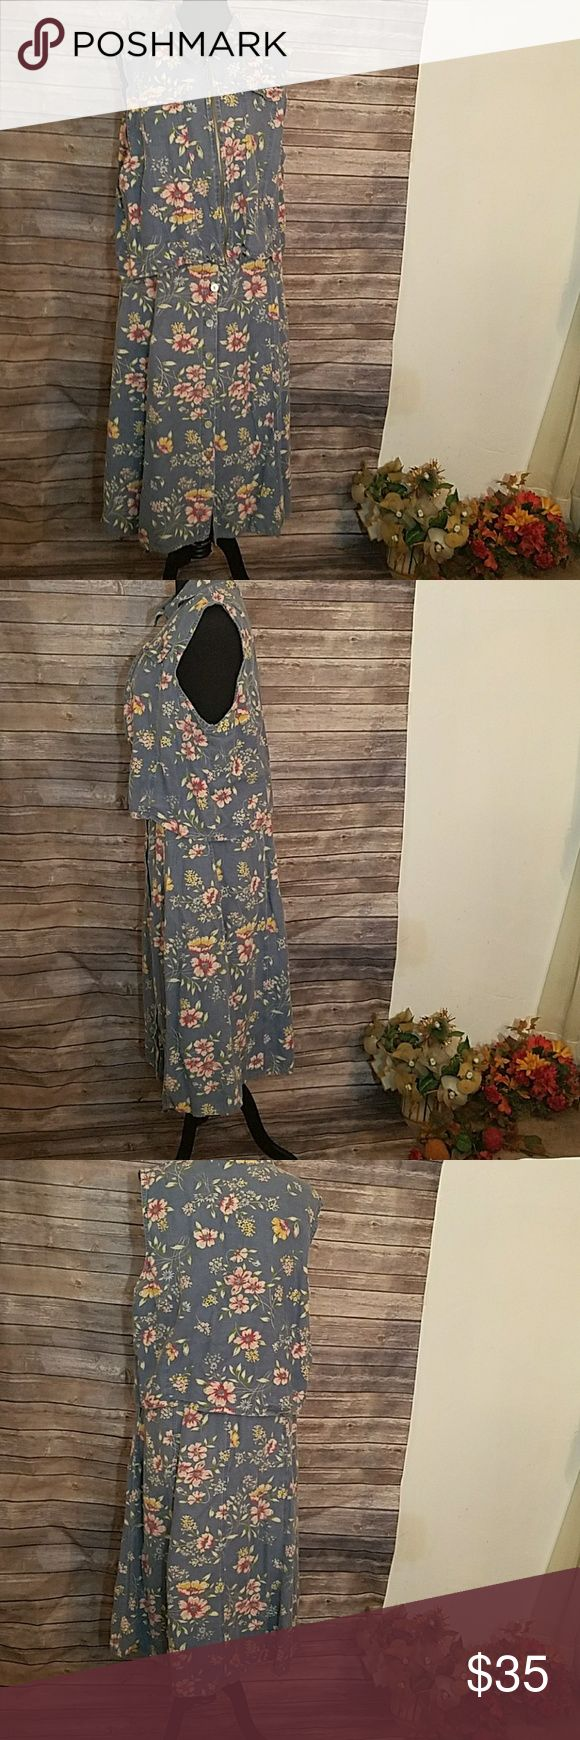 Capacity Woman 2 piece Denim Floral Skirt Set Vintage Floral Print Denim Vest with Matching Denim Skirt. The Skirt has back elastic waist. Skirt has 9 buttons in the front. The vest has a front zipper and two mock pockets on the front. Capacity Woman Skirts